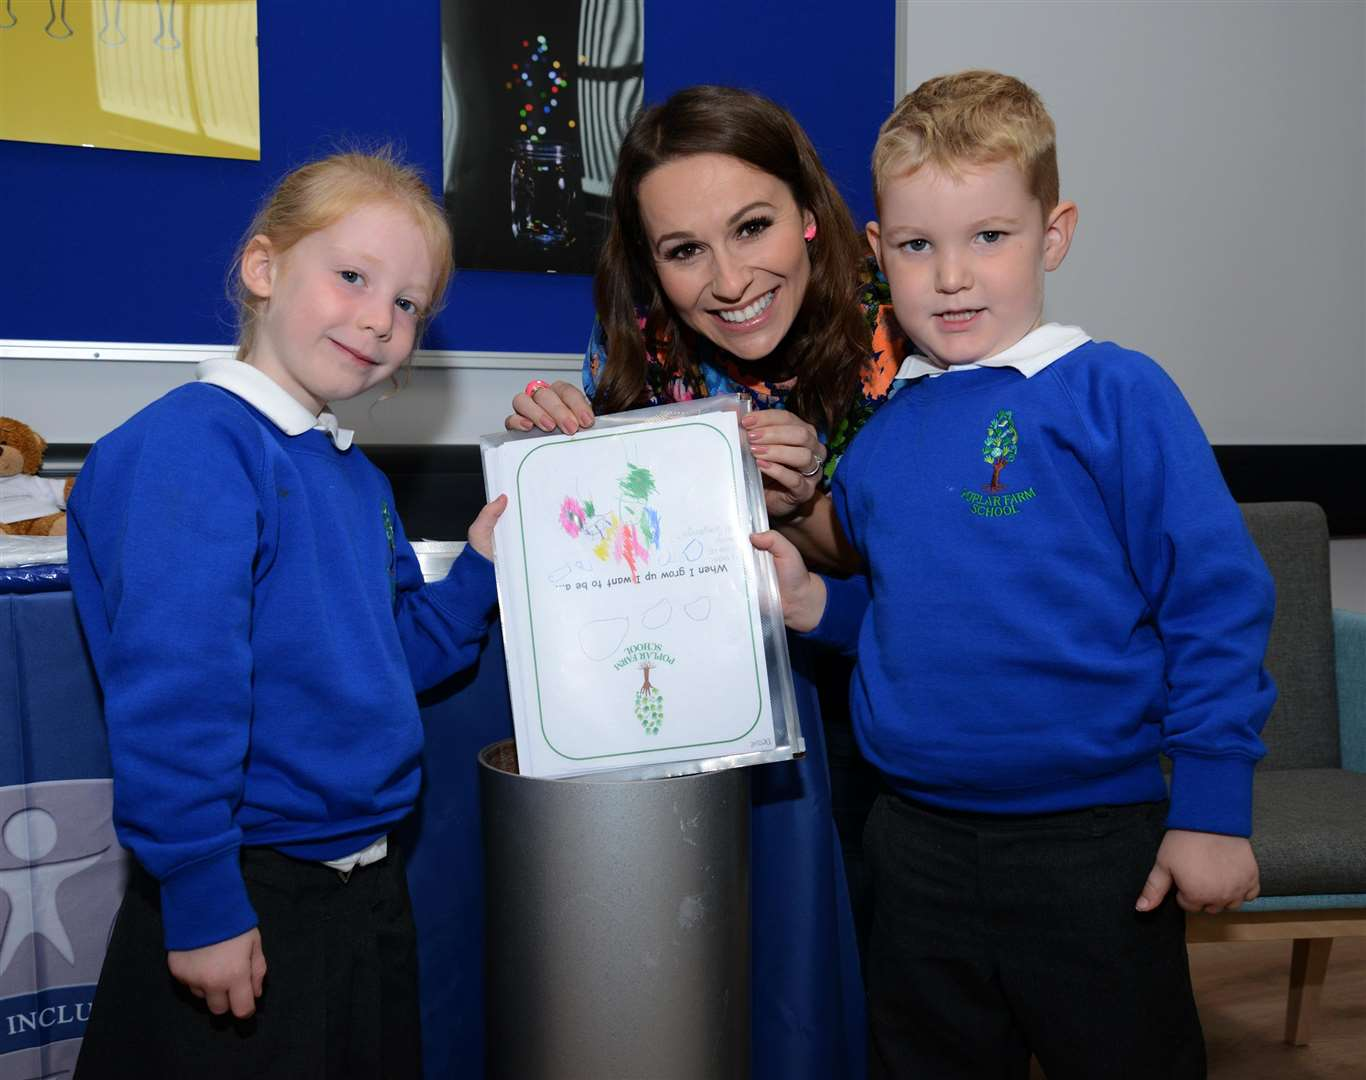 The new pupils placed special items in the time capsule. (4181156)